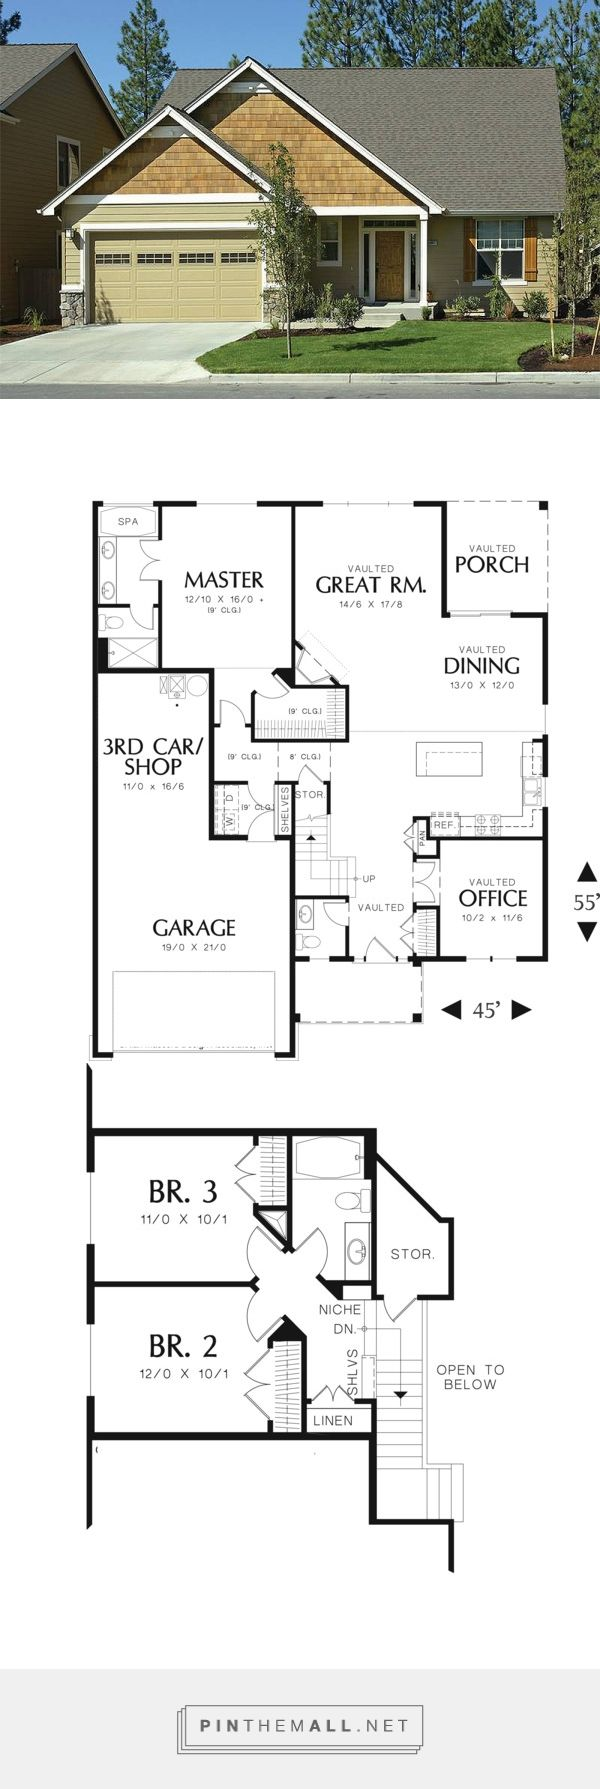 Best 25+ Craftsman style house plans ideas on Pinterest | Bungalow ...